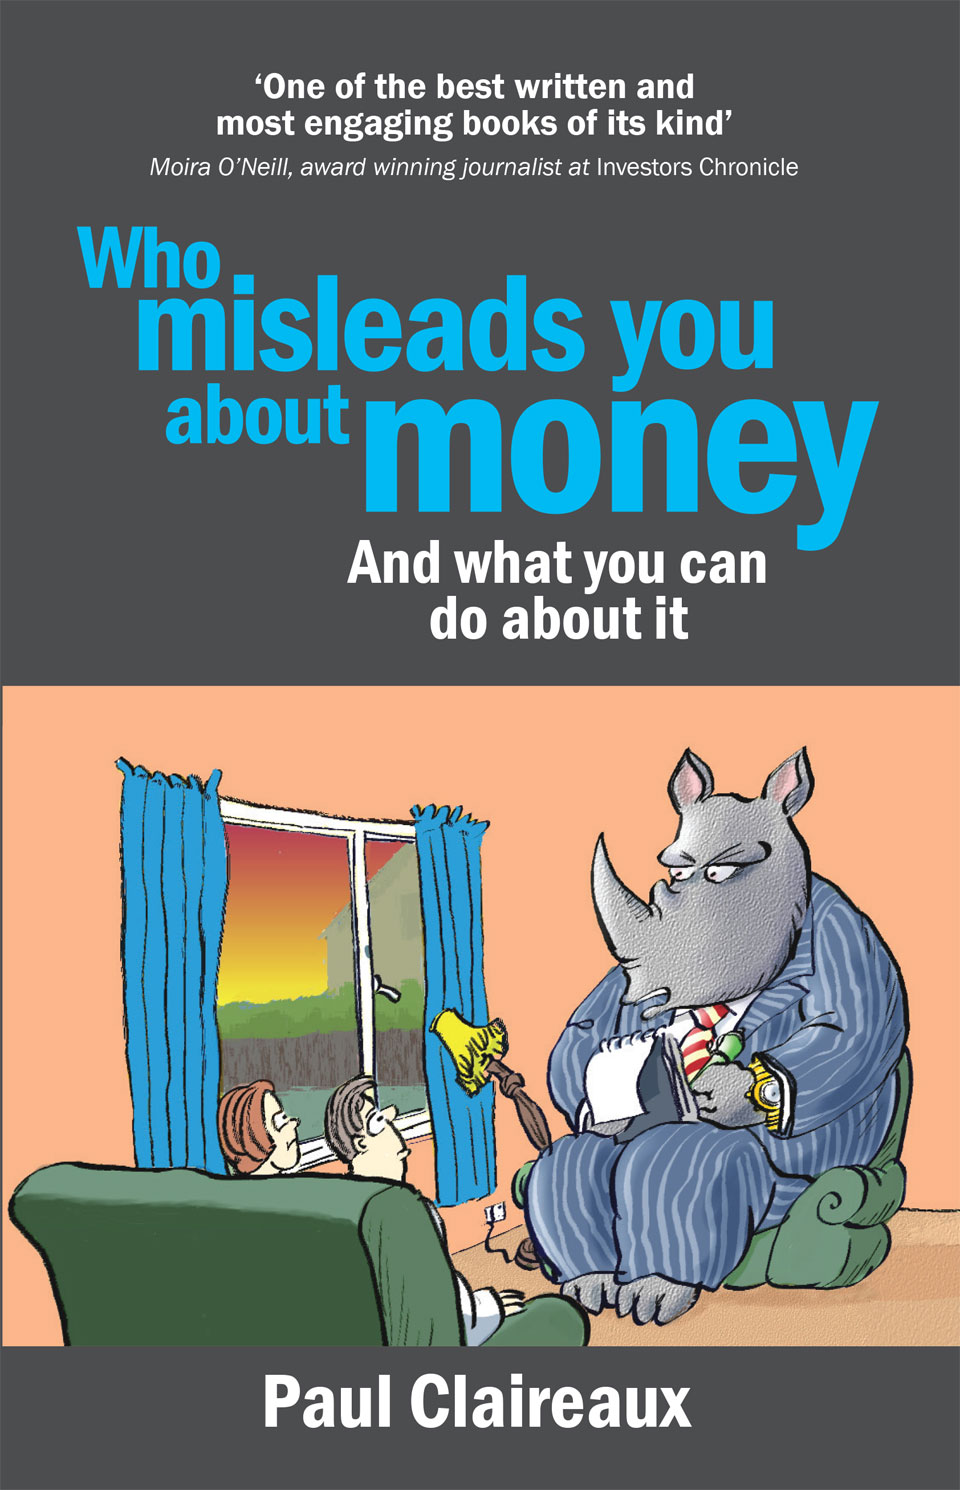 Who misleads you about money?